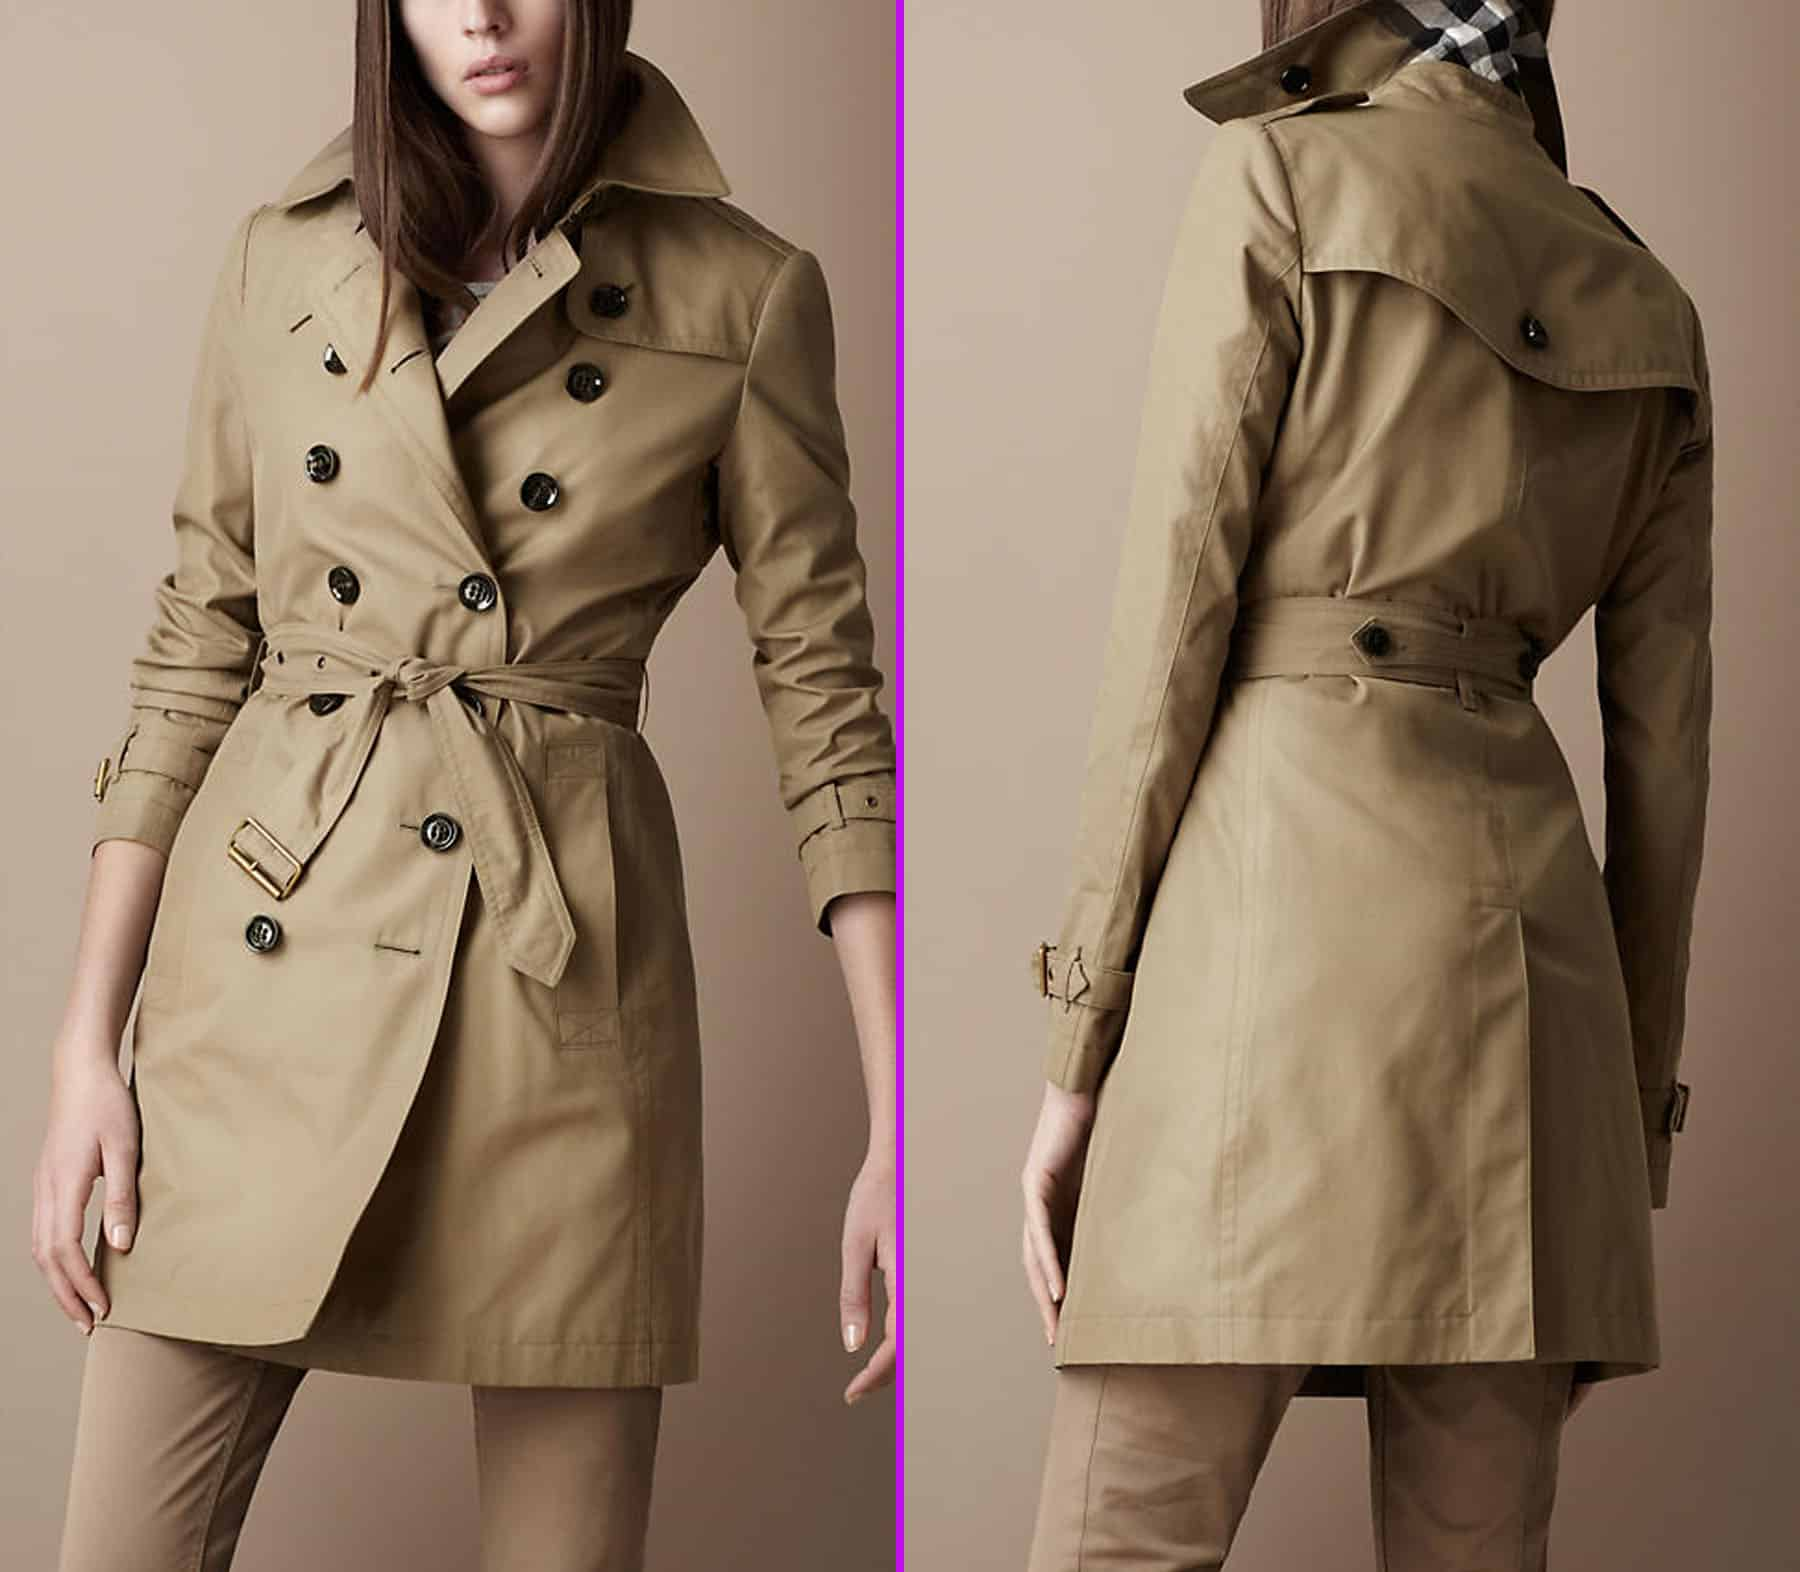 Ladies coats fashion trends Fall winter 2015-2016 - DRESS TRENDS